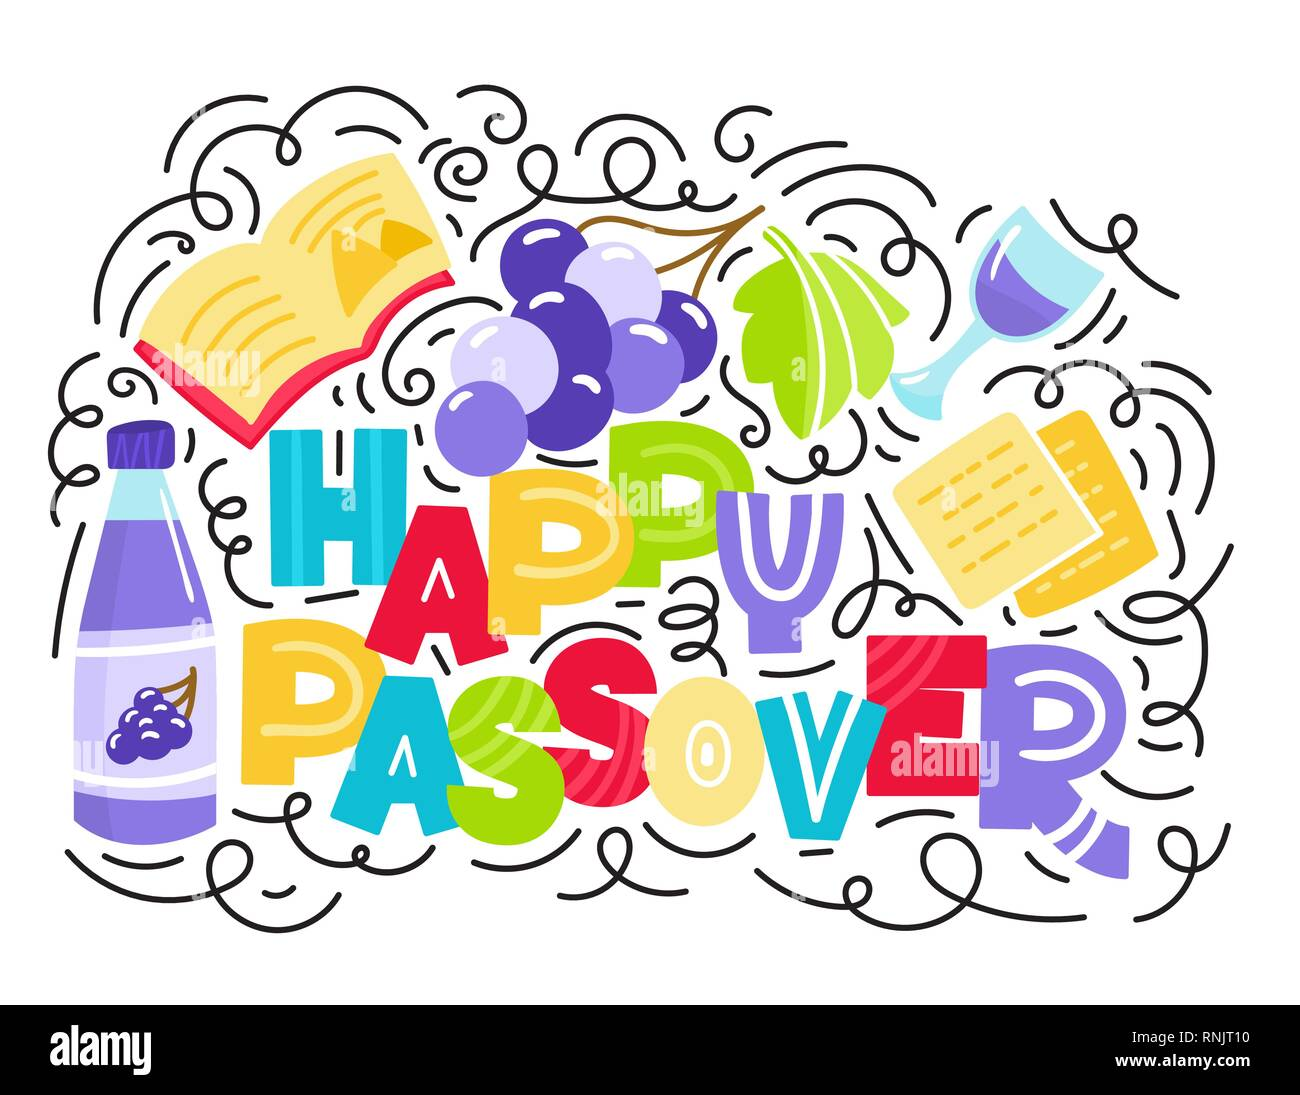 Passover greeting card (Jewish holiday Pesach). Hebrew text: happy Passover. Doodle style vector illustration. Isolated on white background. - Stock Vector